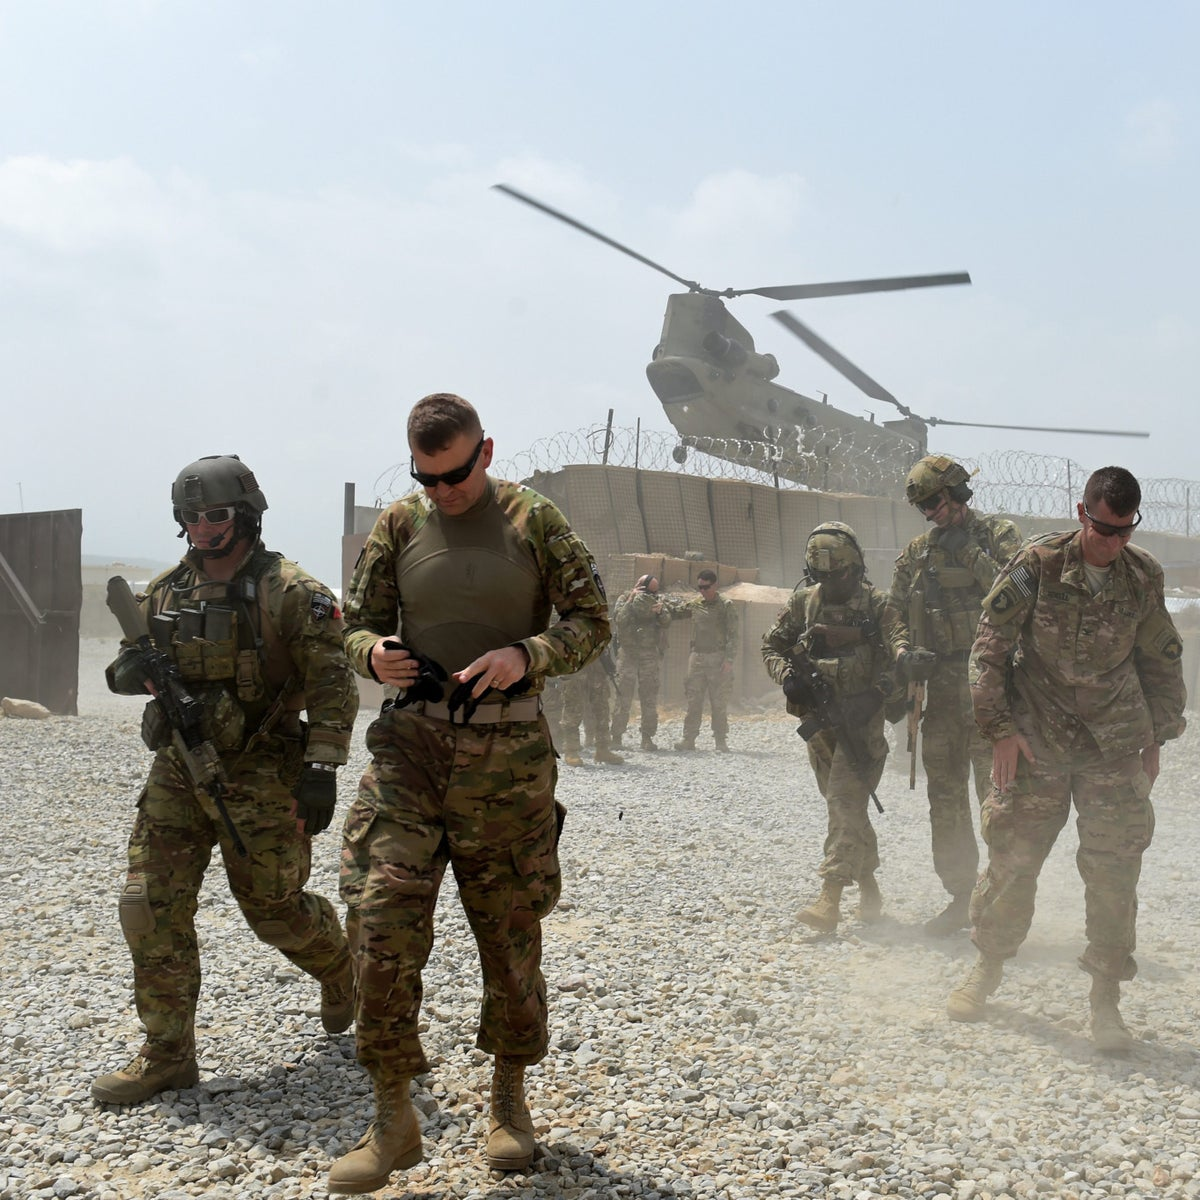 U.S. troops in Afghanistan.